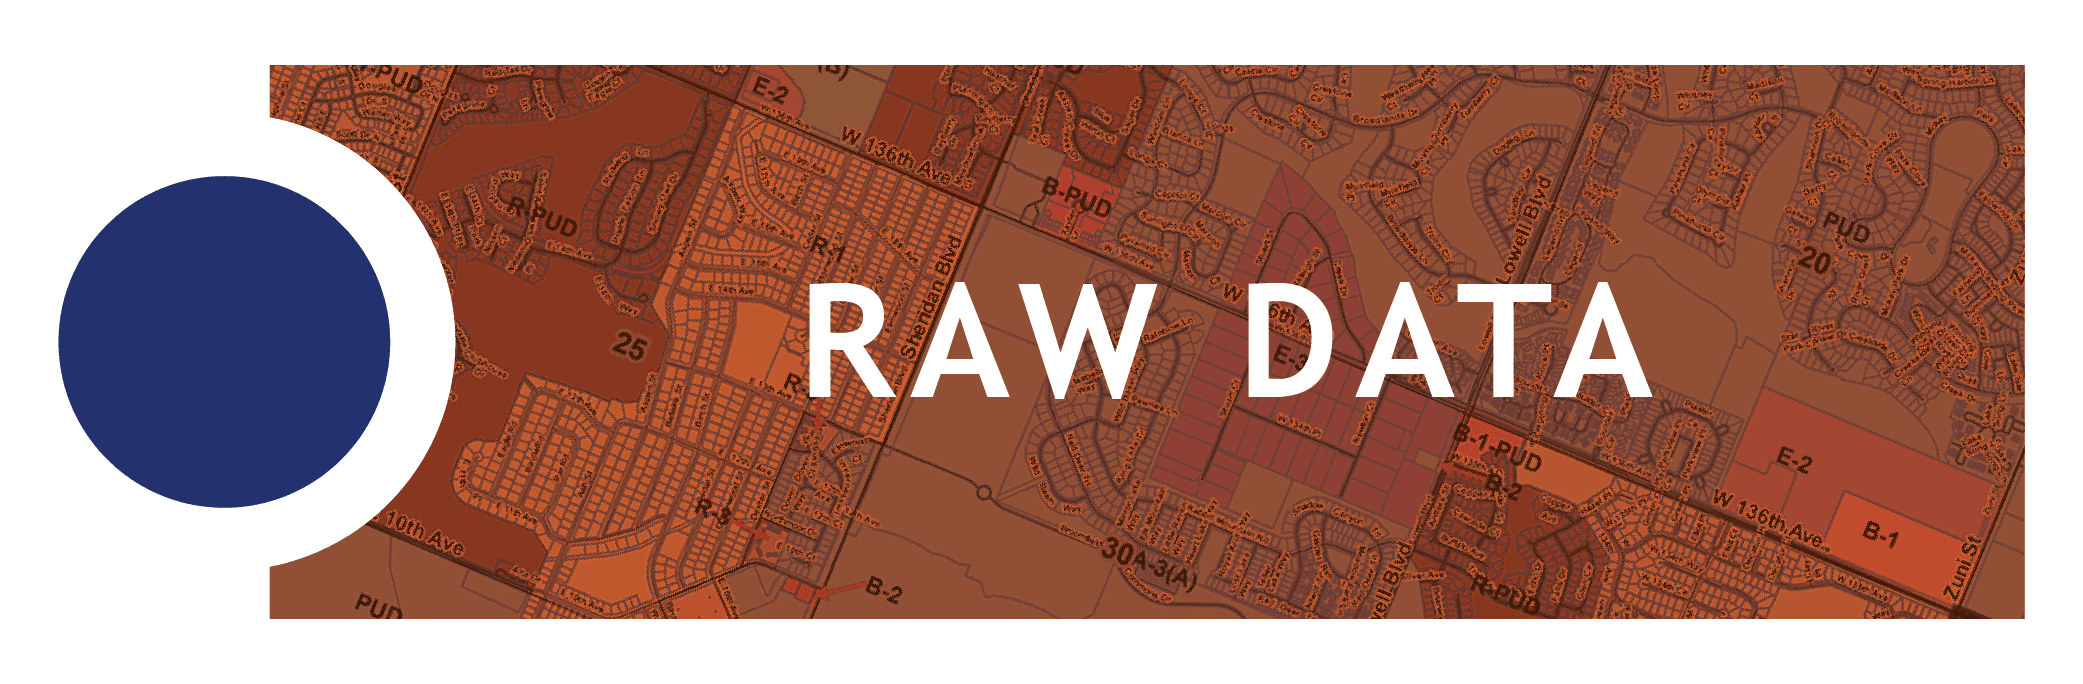 Open Raw Data